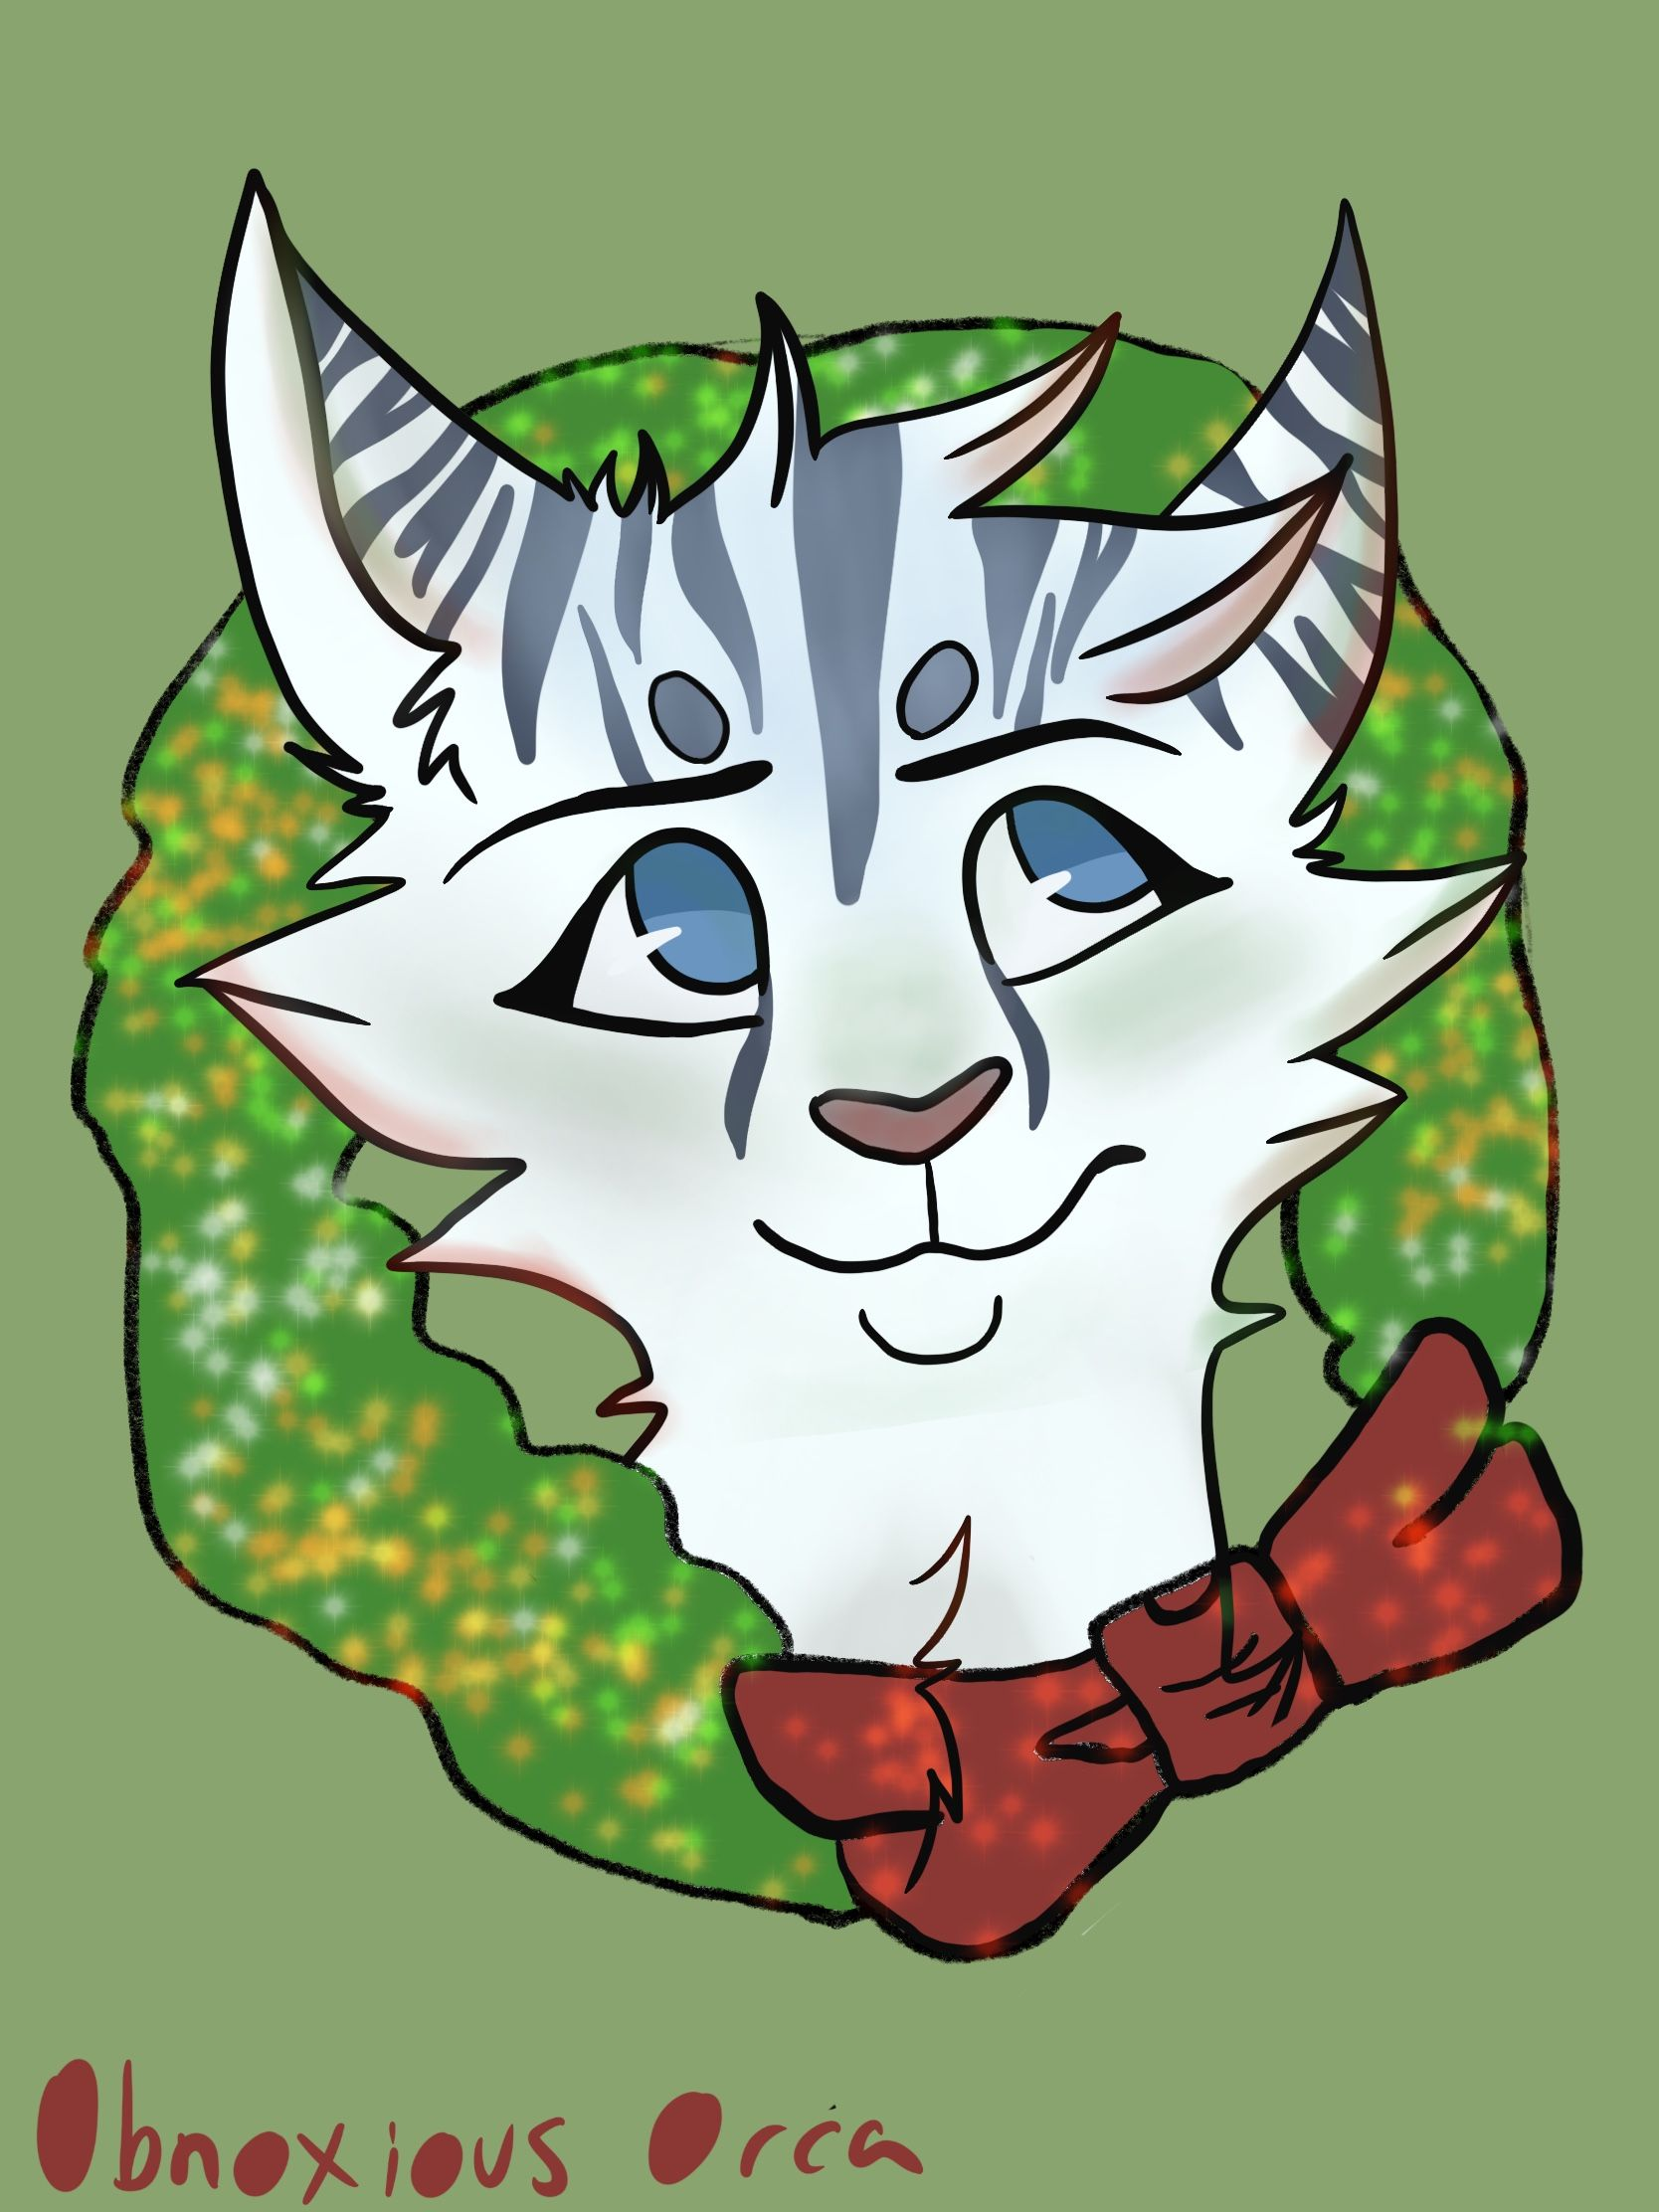 Christmas Pfp.Christmas Pfp Request From Bluedream This Is Her Oc